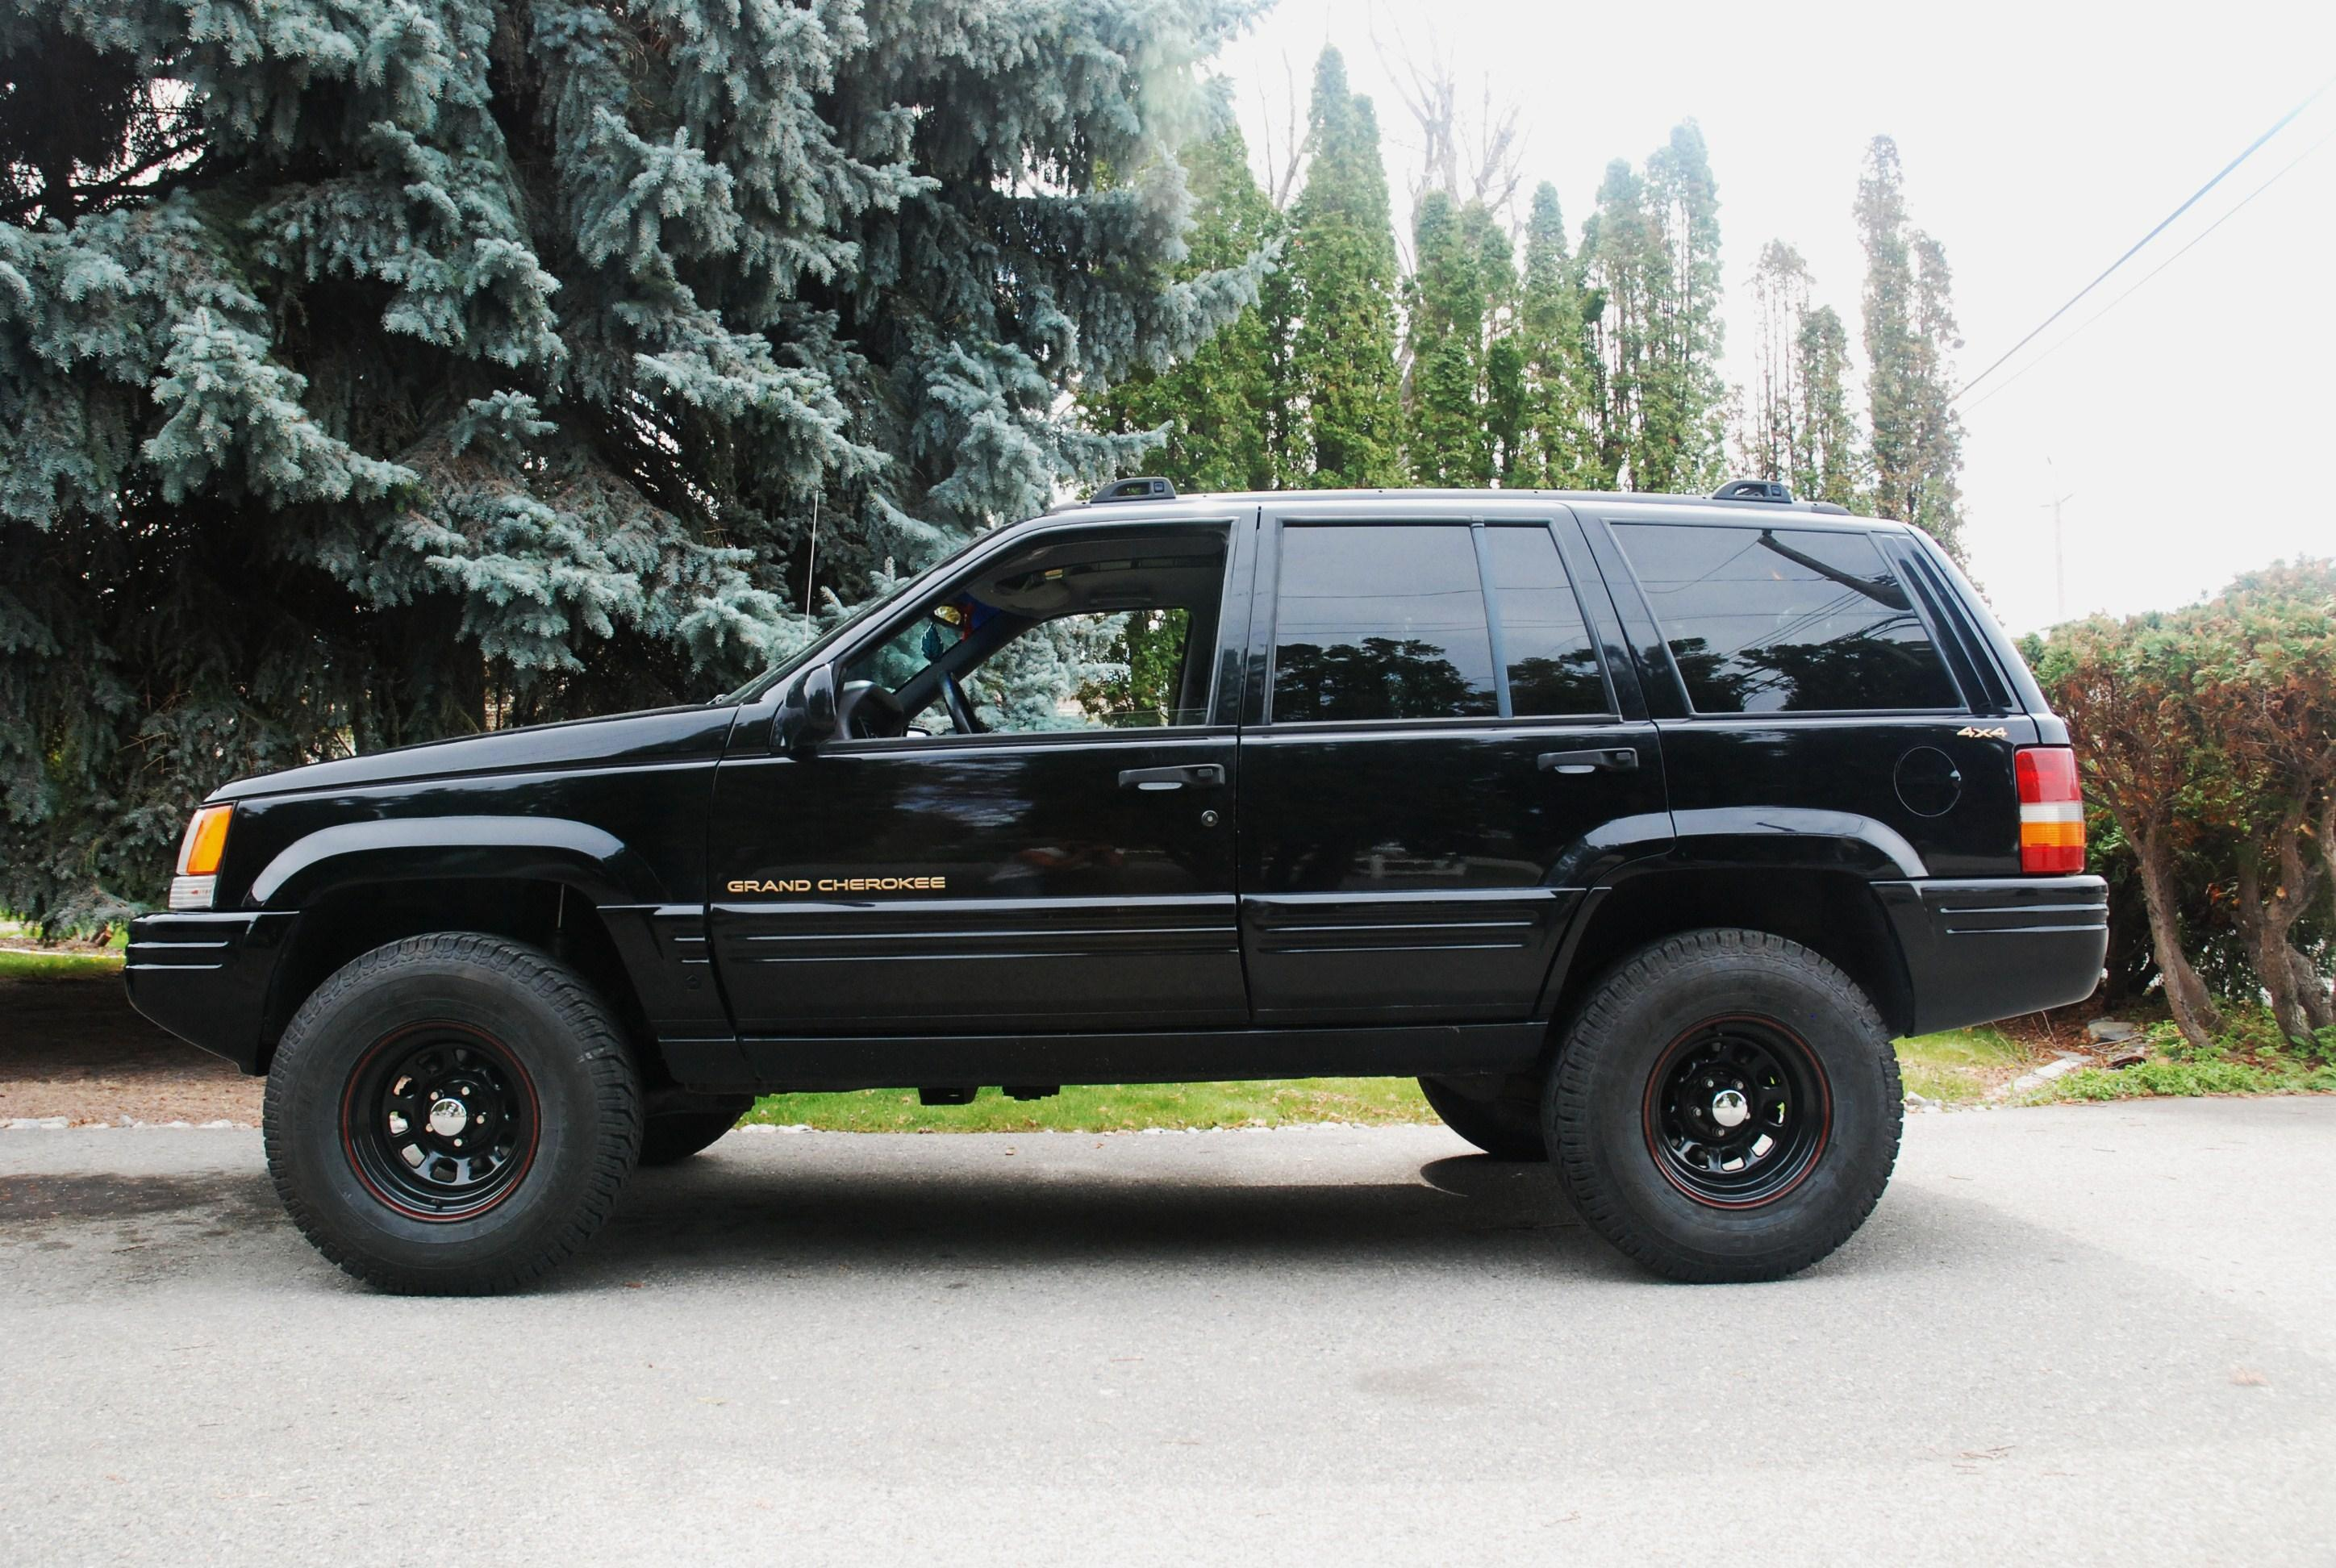 Superior 1996 Jeep Grand Cherokee #3 Jeep Grand Cherokee #3